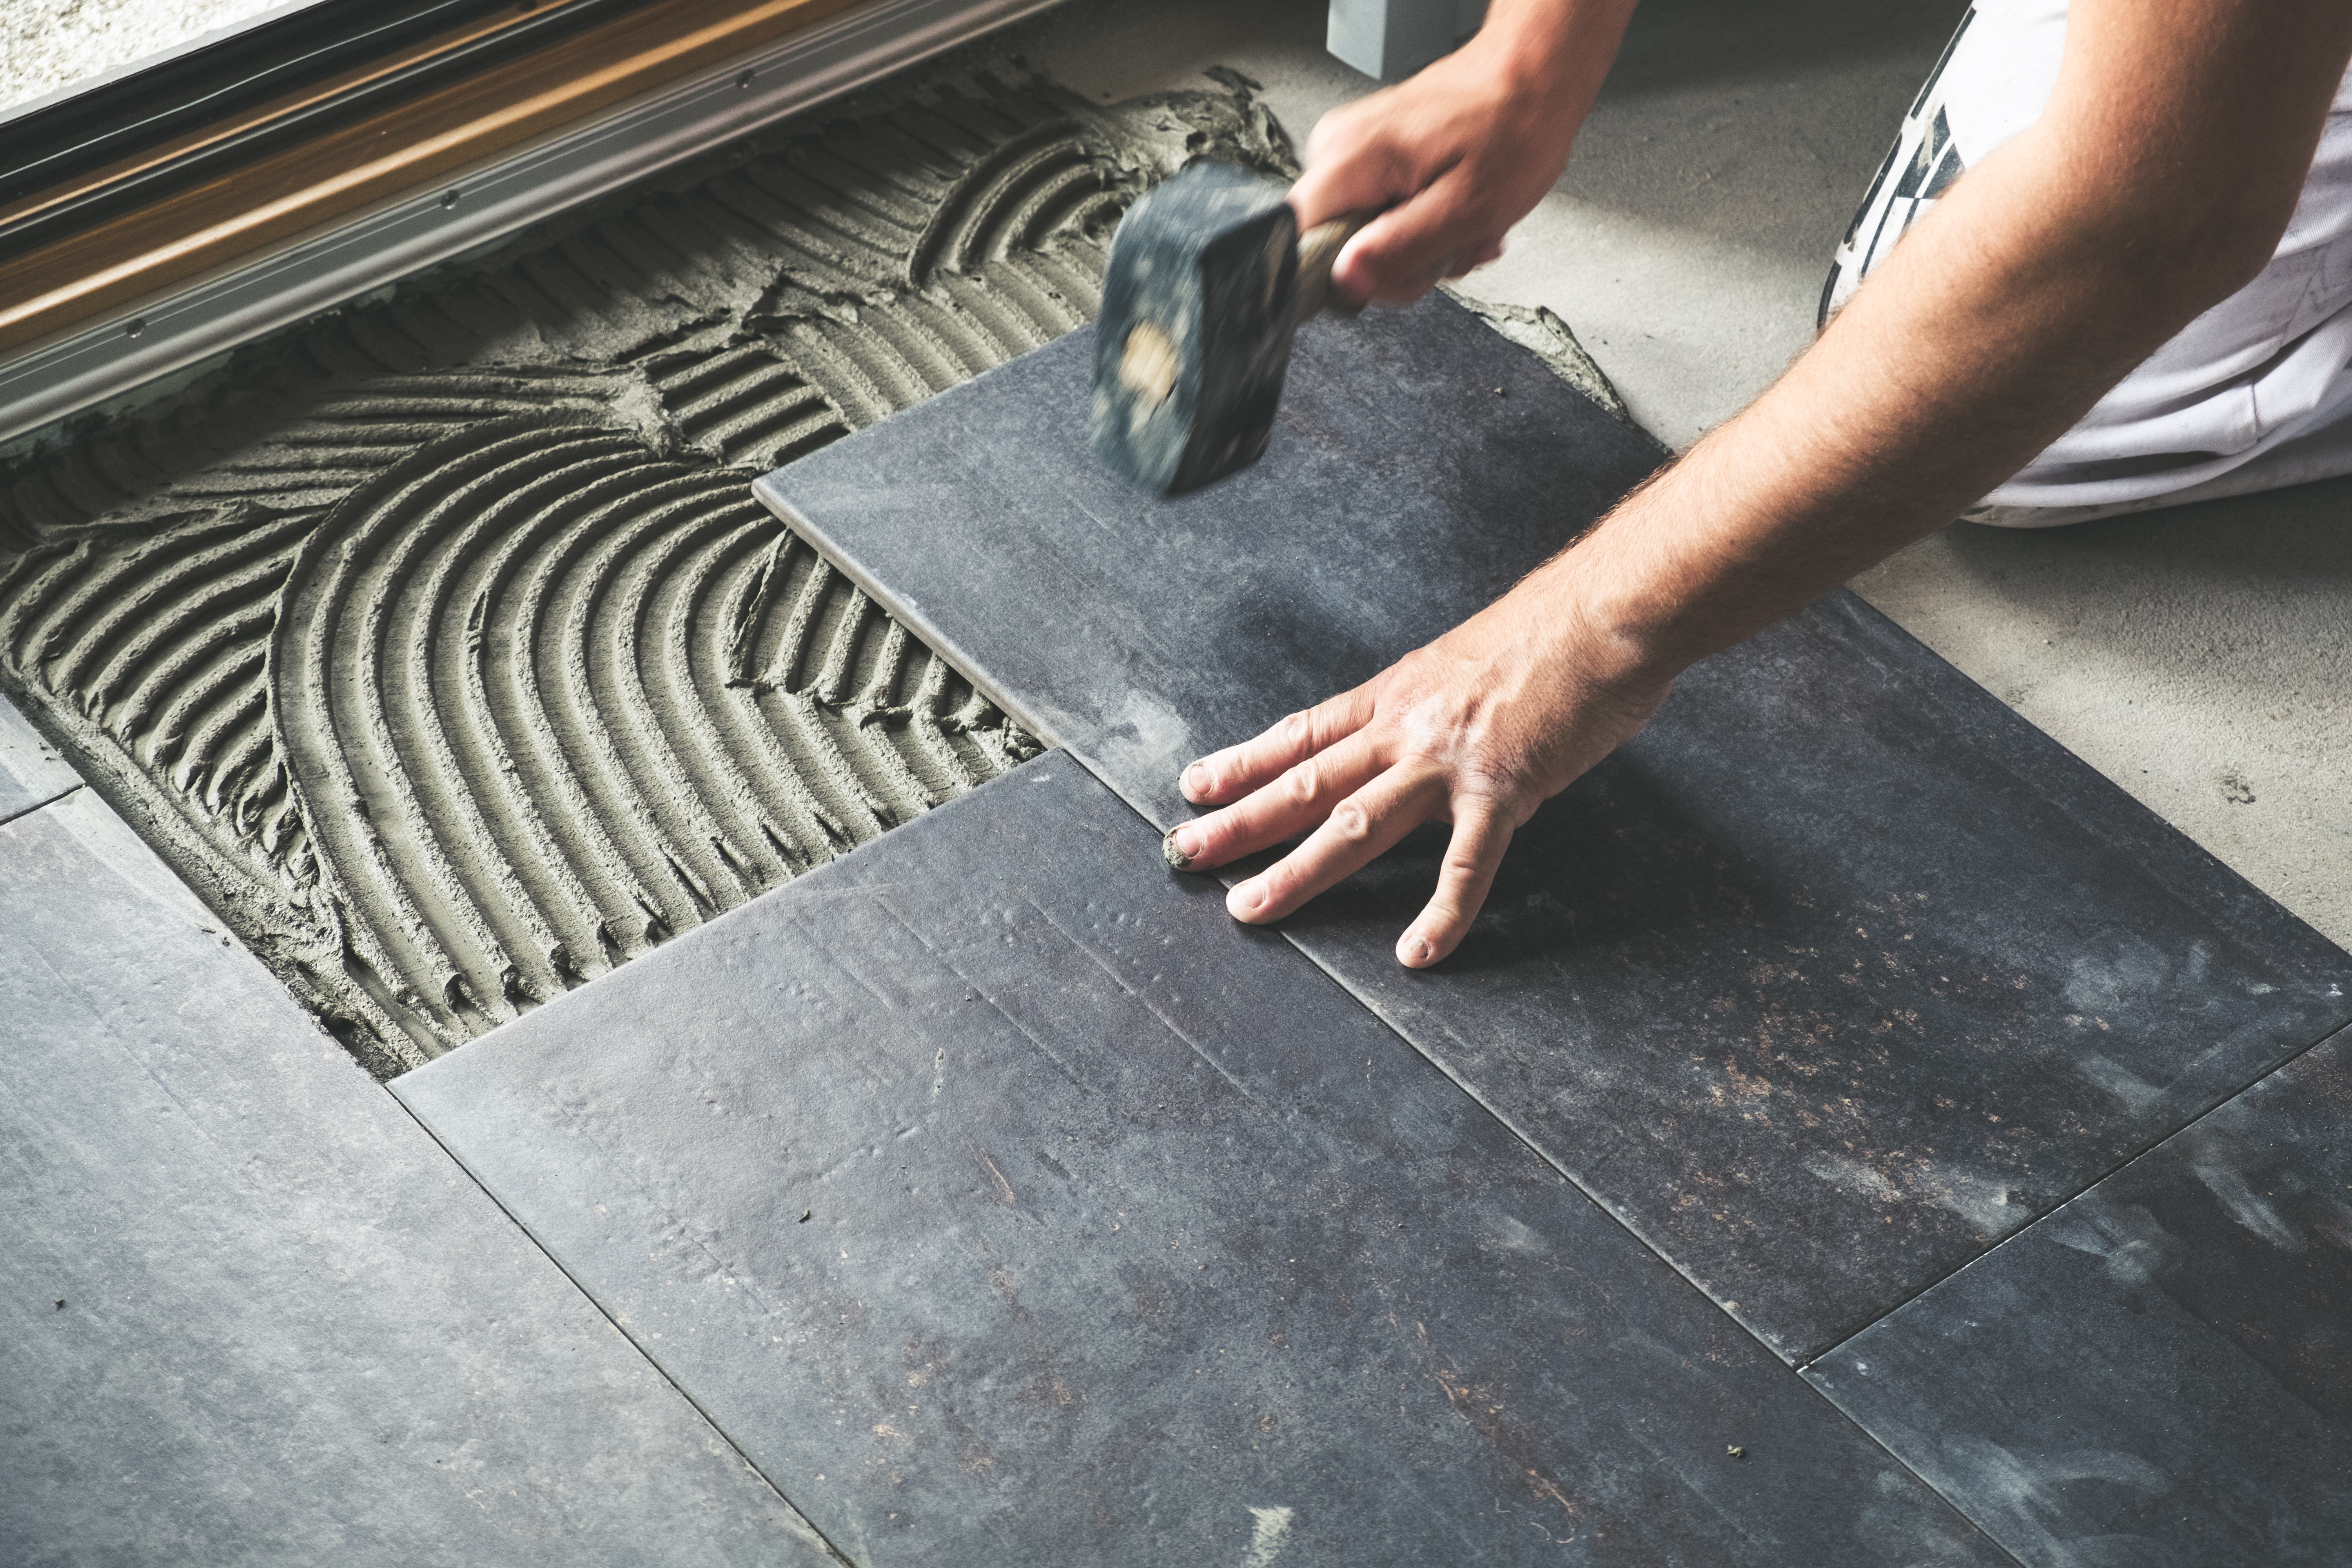 How to Prepare a Floor for Peel & Stick Tile | Home Guides